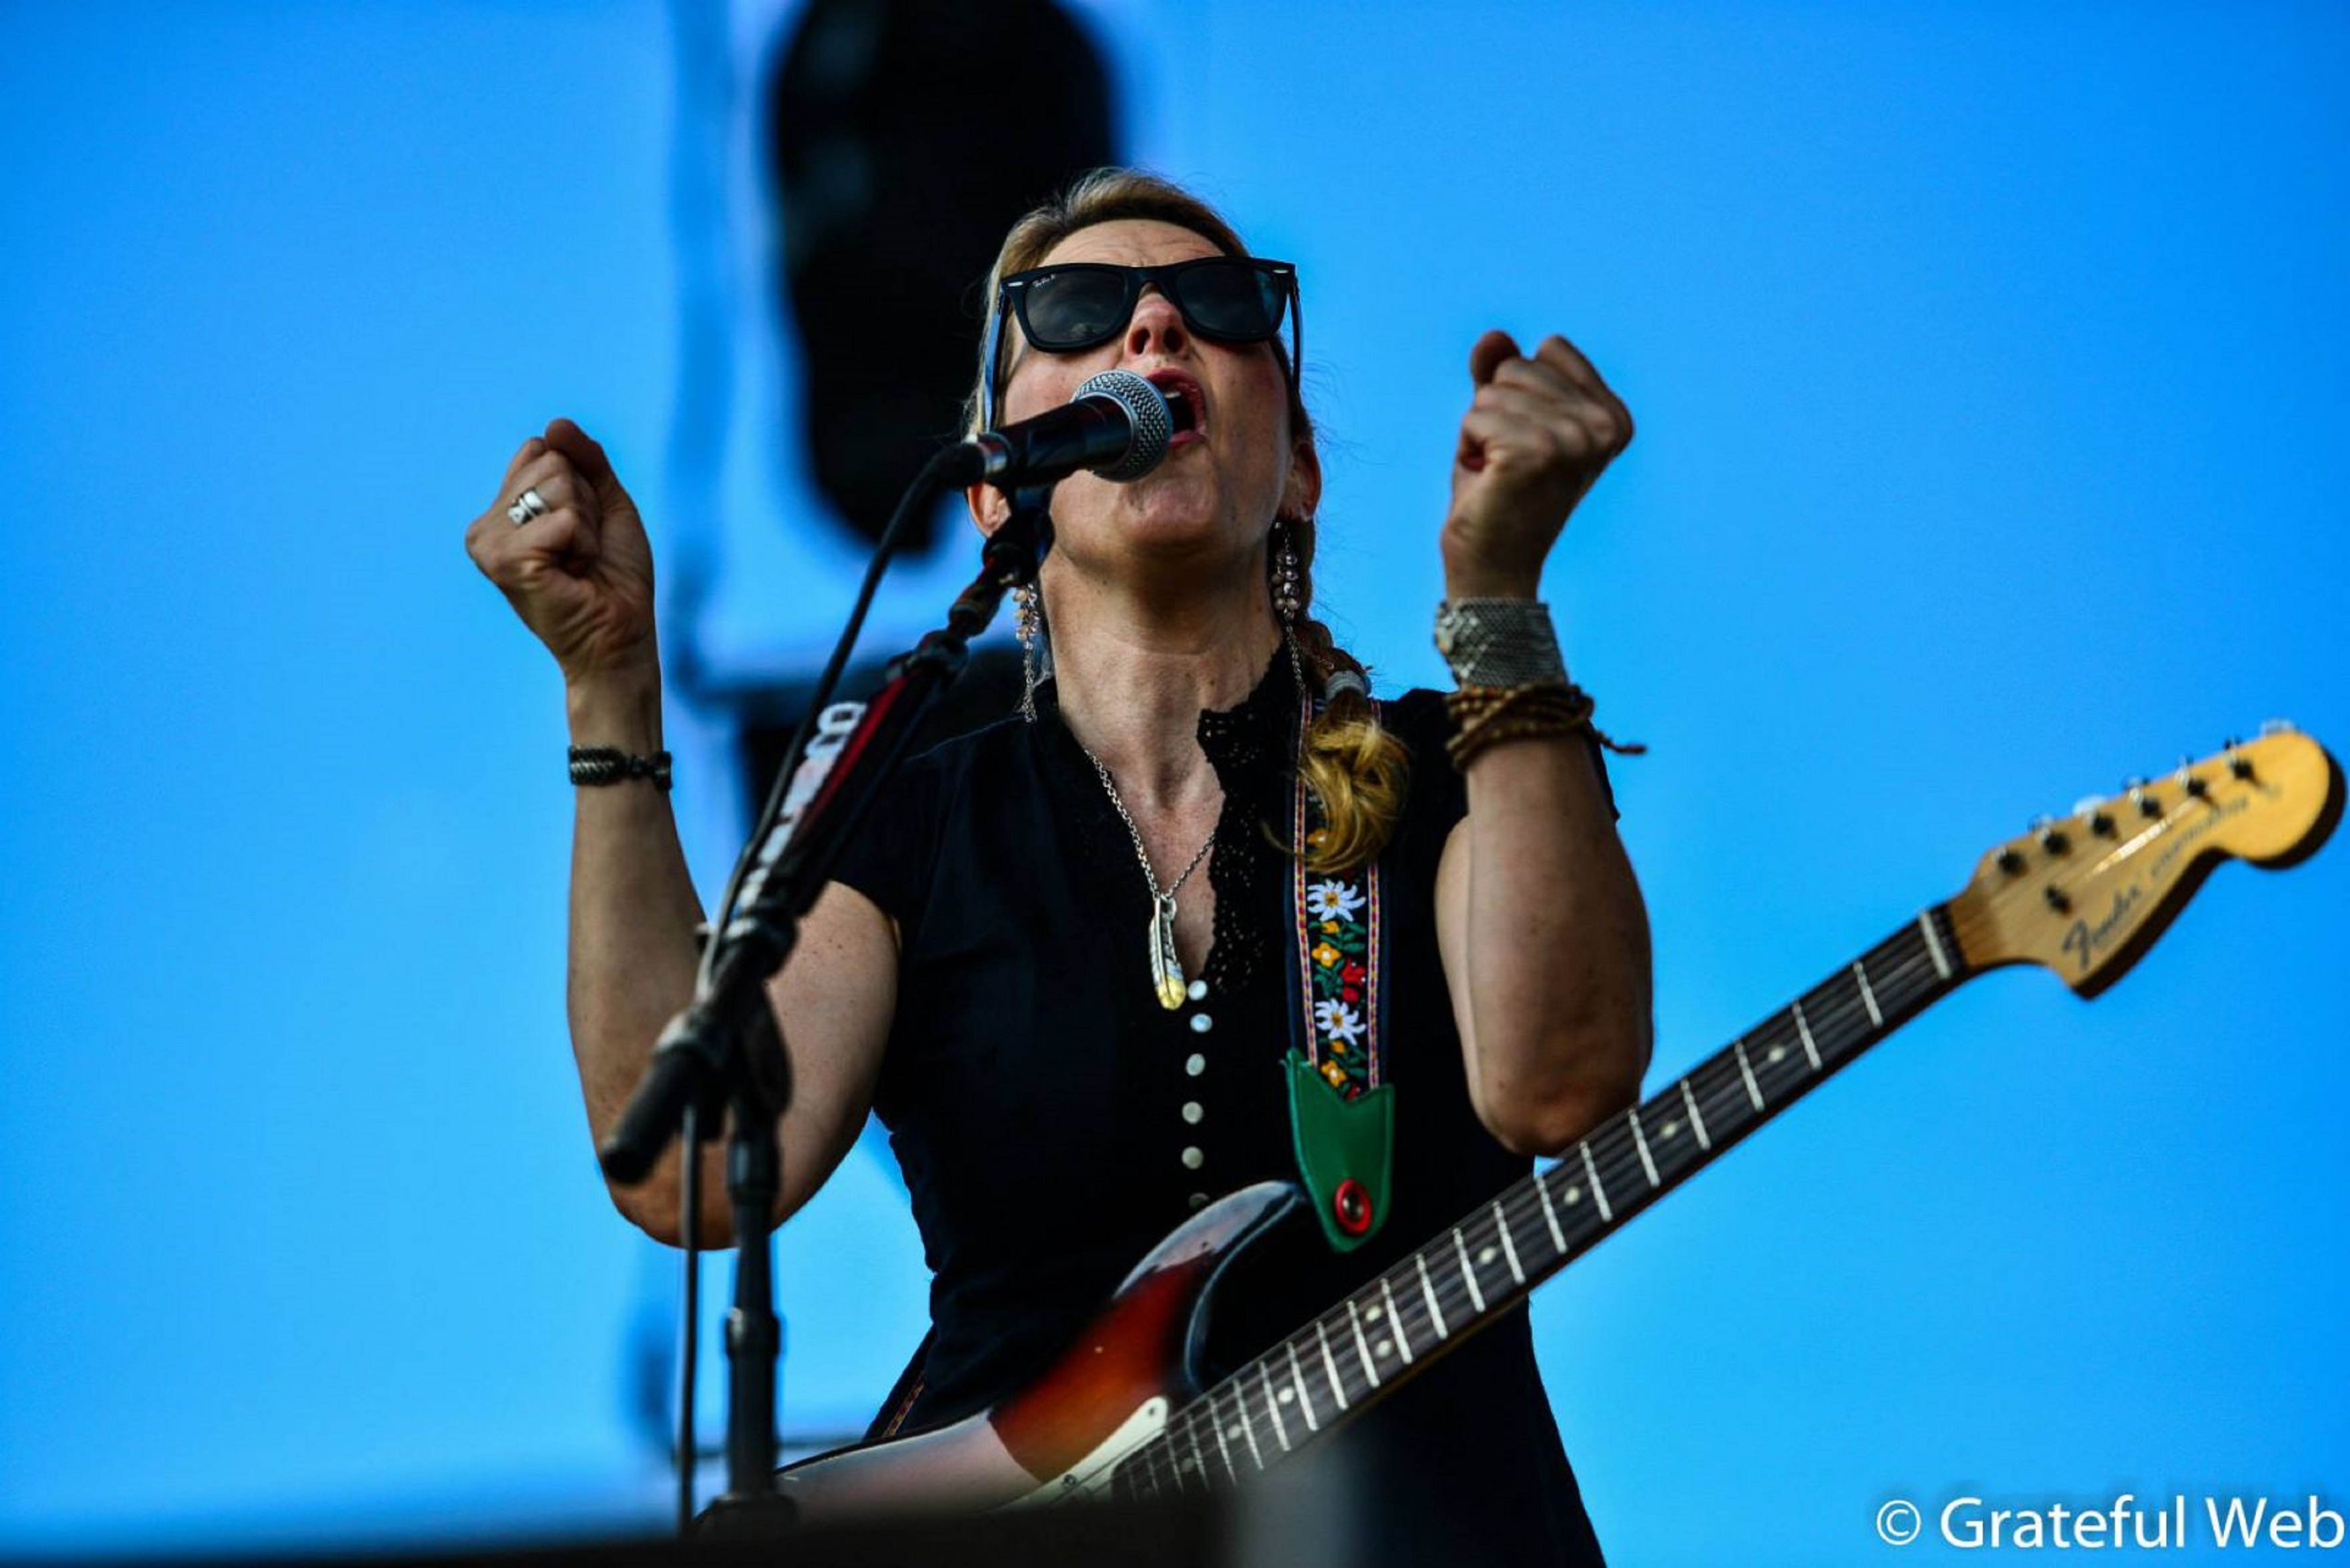 Susan Tedeschi to Sing National Anthem at Bills/Jags NFL Playoff Game